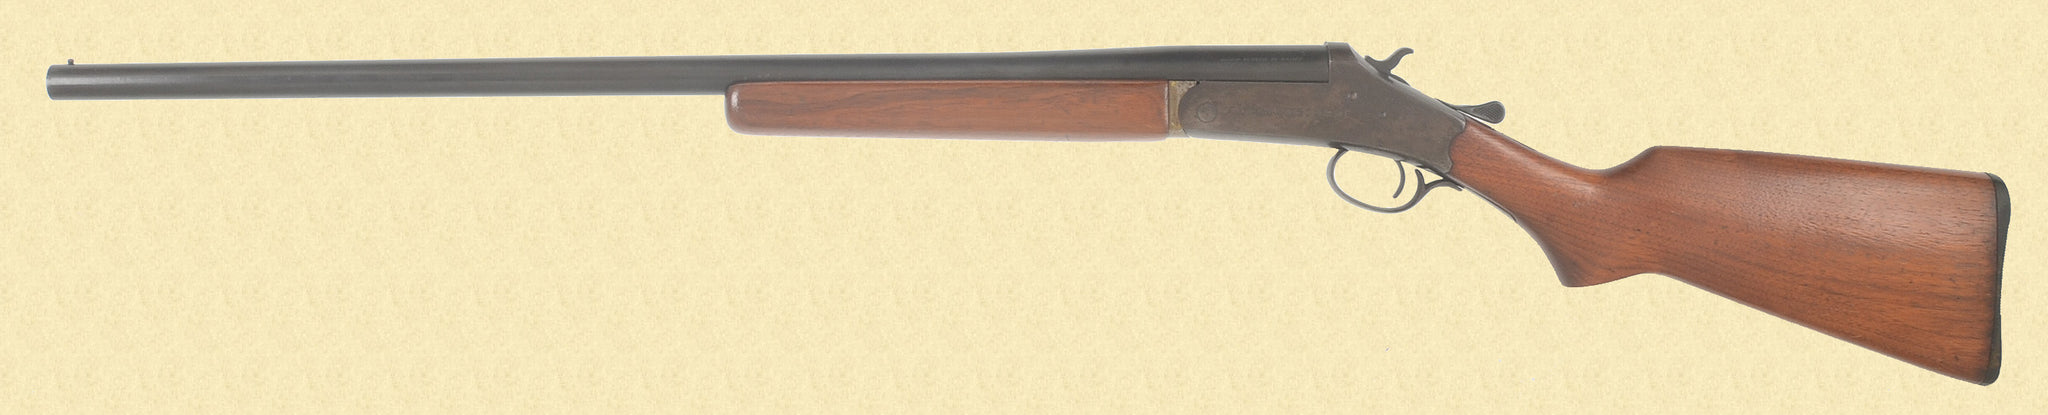 EASTERN ARMS CO 16 GAUGE SINGLE SHOT